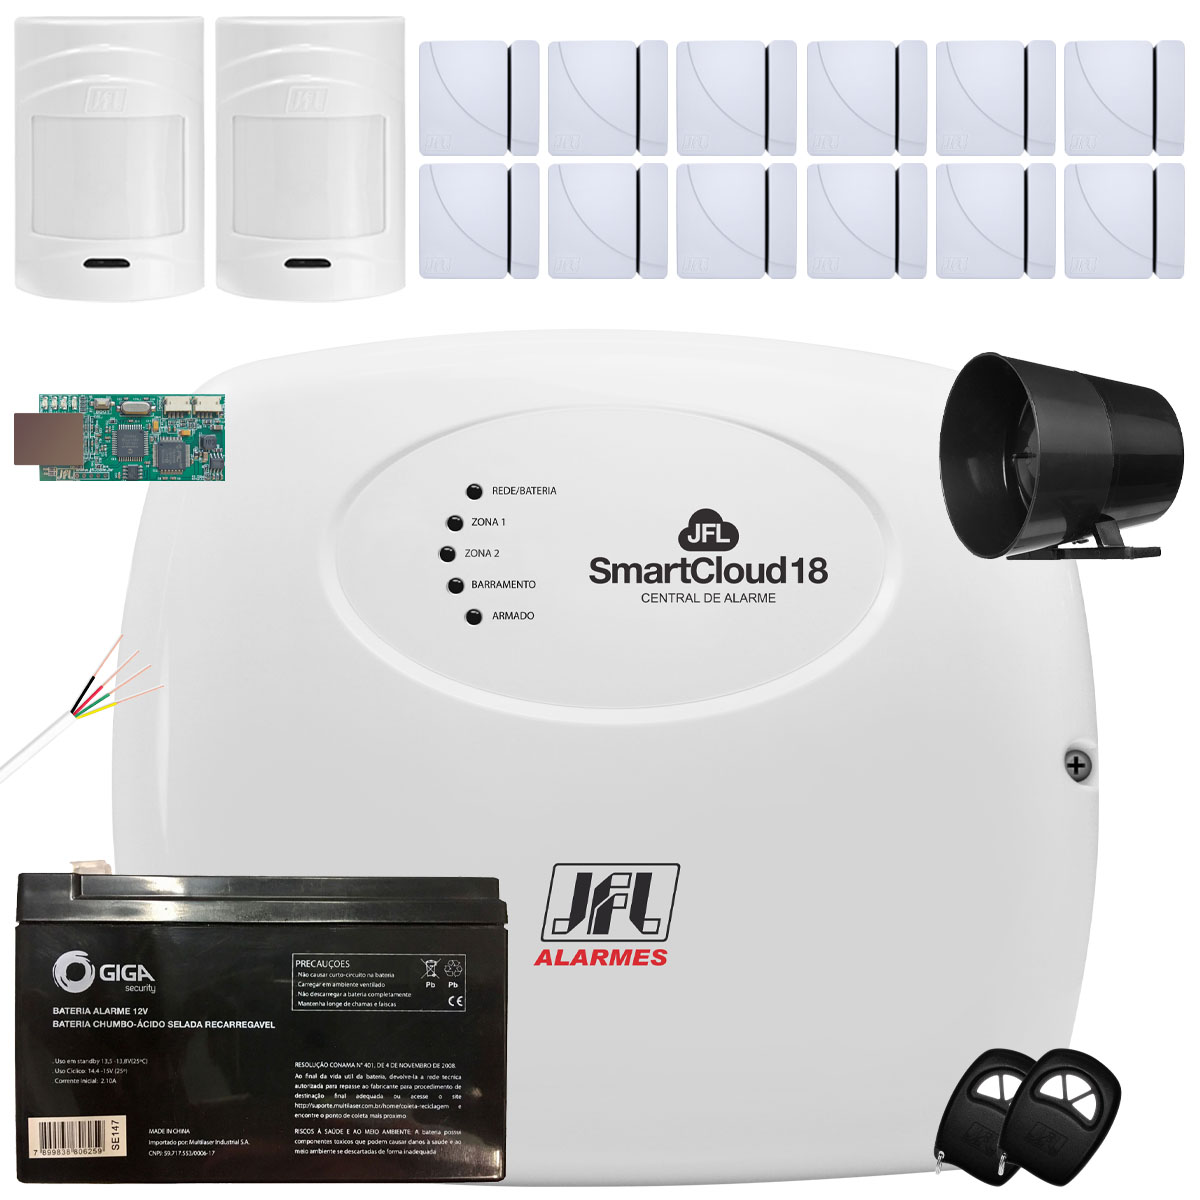 Kit Alarme SmartCloud 18 Jfl  Com 12 Shc Fit e 2 IrPet 530Sf